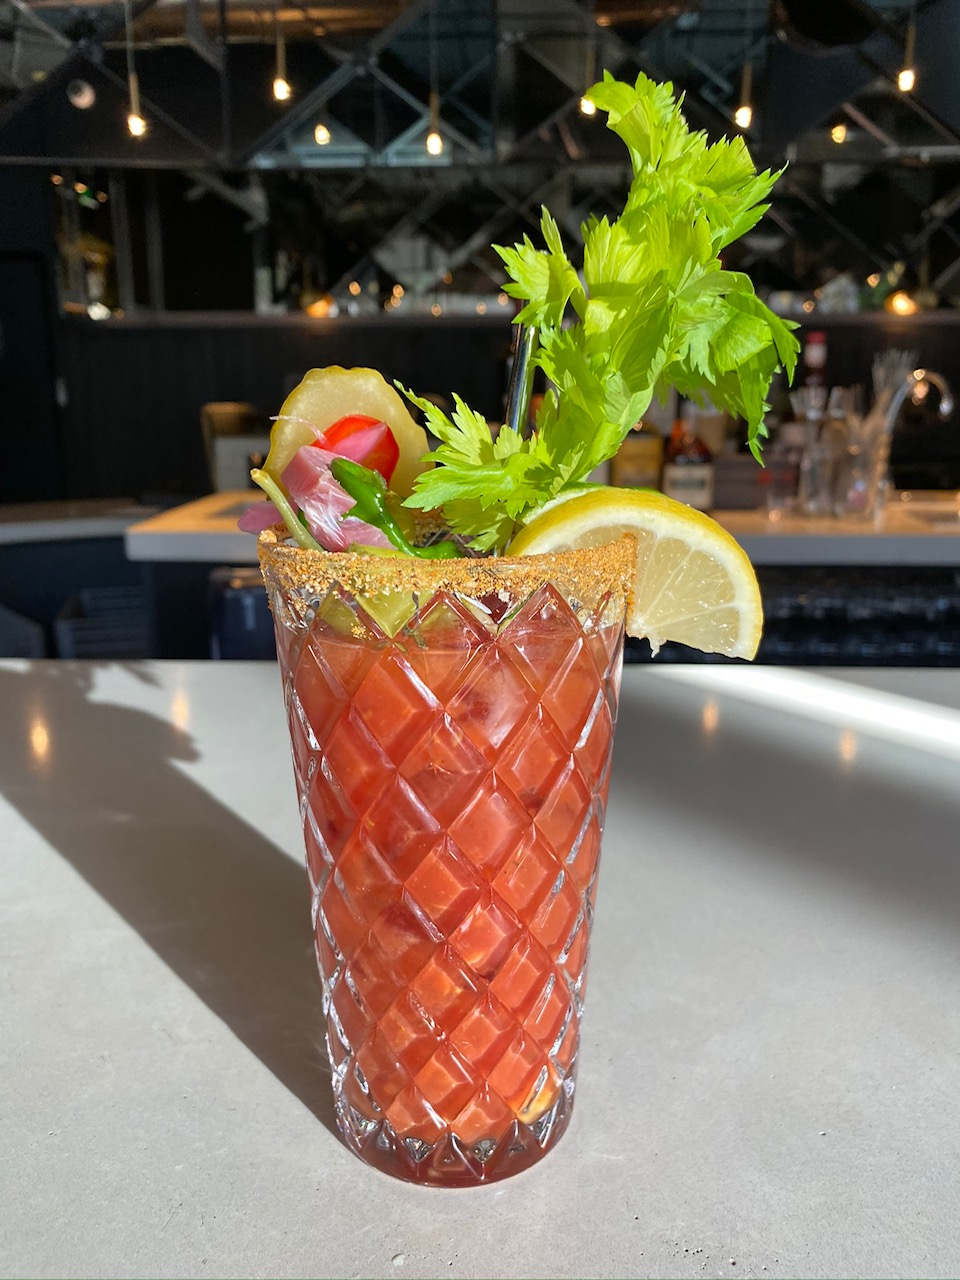 Bloody Mary at Avid Cider Co. & Kitchen. (photo by Cat Stelzer)